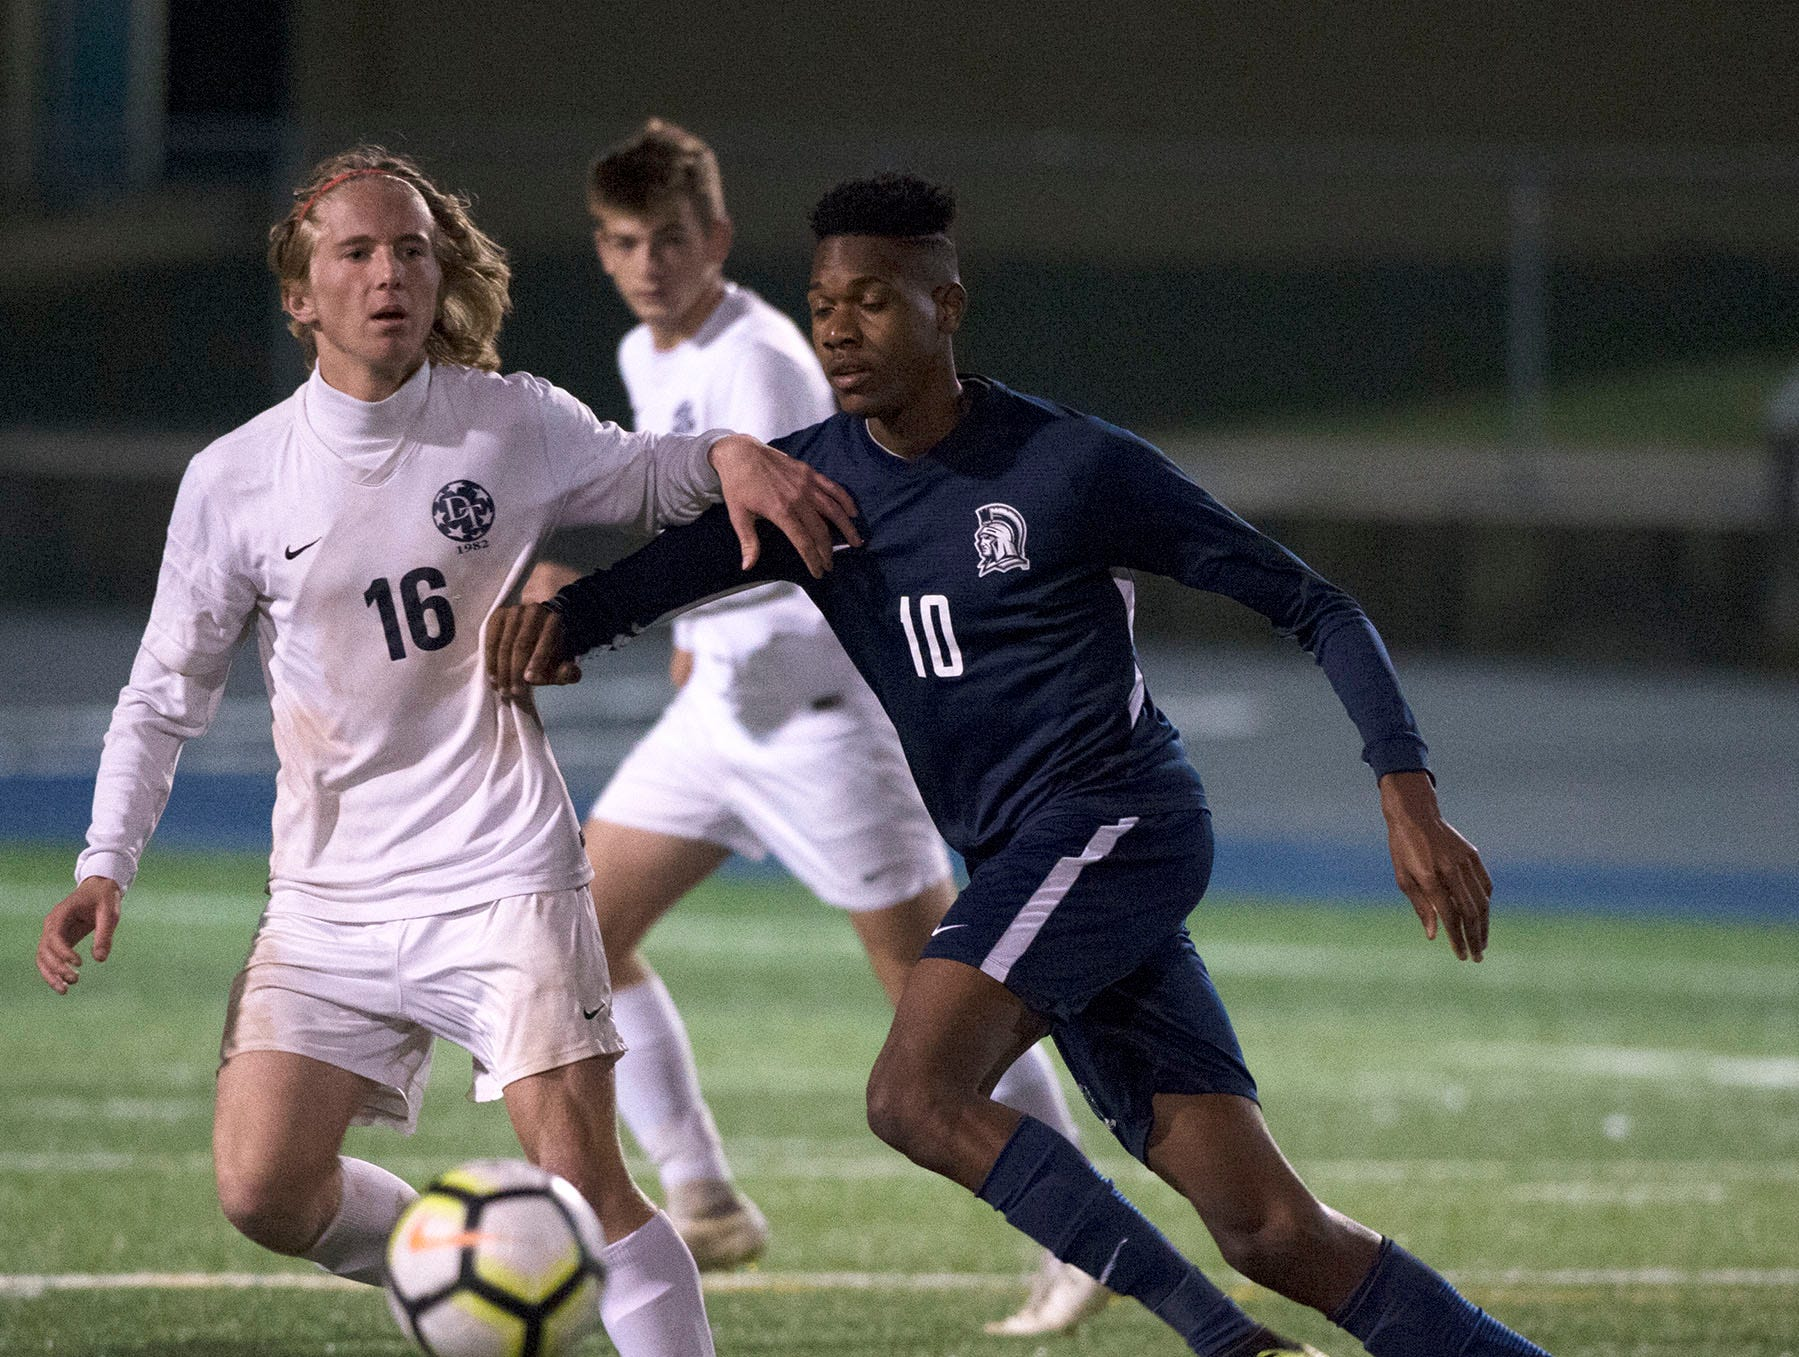 Dallastown's Cole Larson (16) challenges of Chambersburg's Omario Duncan (10) for the ball. Chambersburg lost a first round D3 soccer match to Dallastown 2-1 on Tuesday, Oct. 23, 2018.